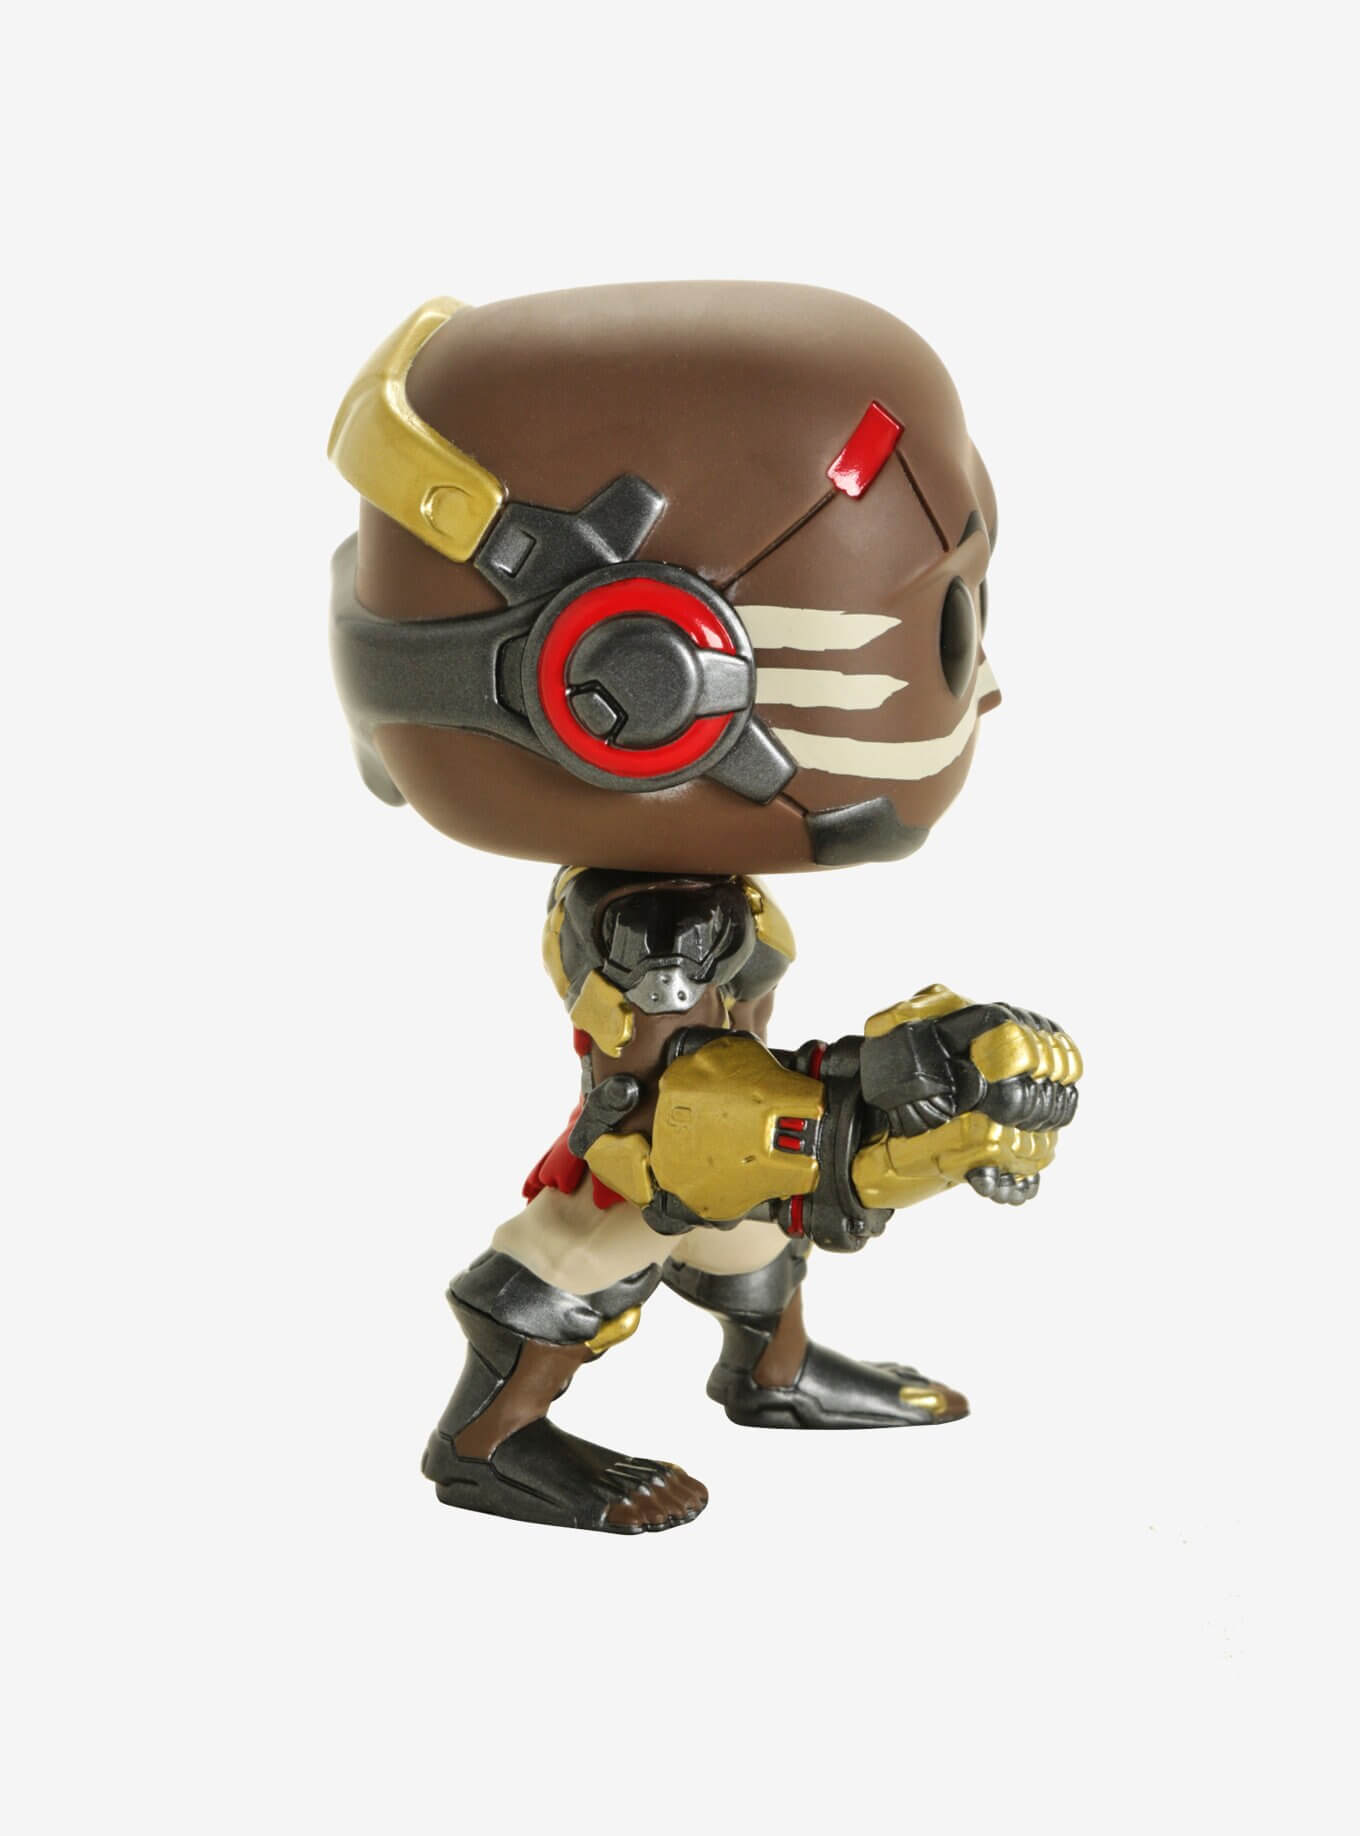 Doomfist #351 - Overwatch - Funko Pop! Games